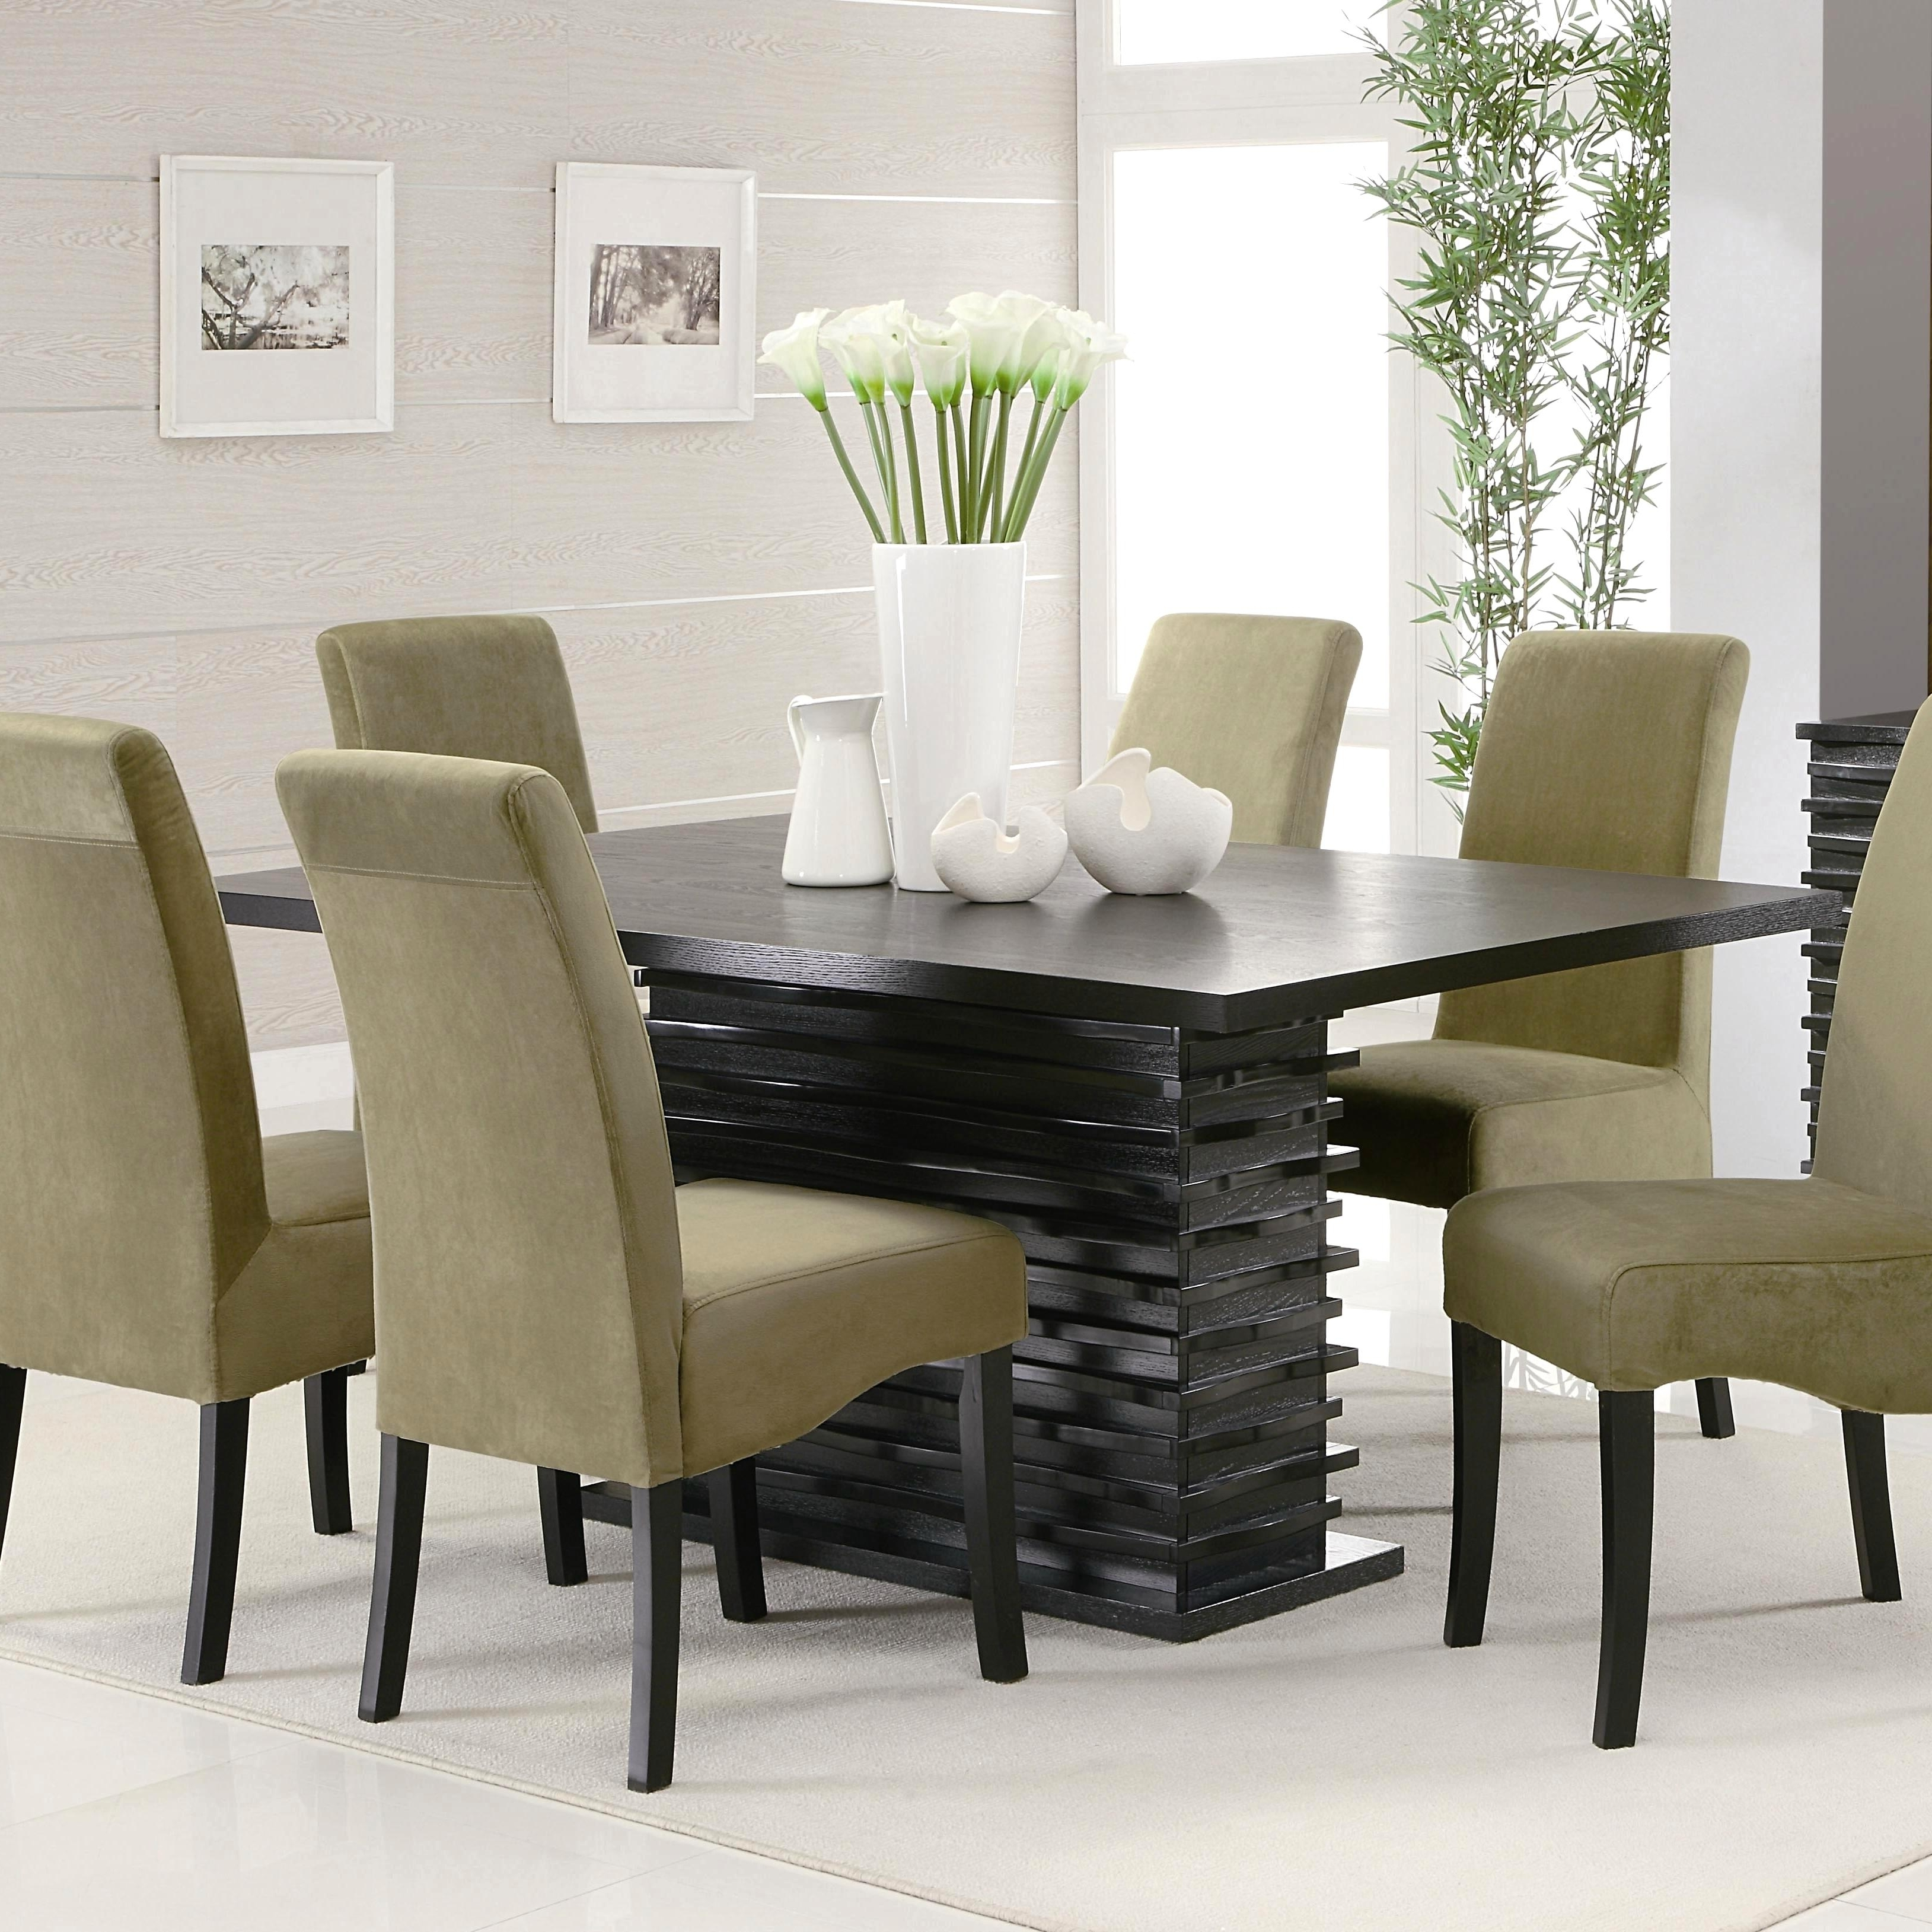 Well Known Cream Dining Tables And Chairs Pertaining To Splendid Cream Dining Tables Chairs Luxurius Home Ning Chairs (View 22 of 25)